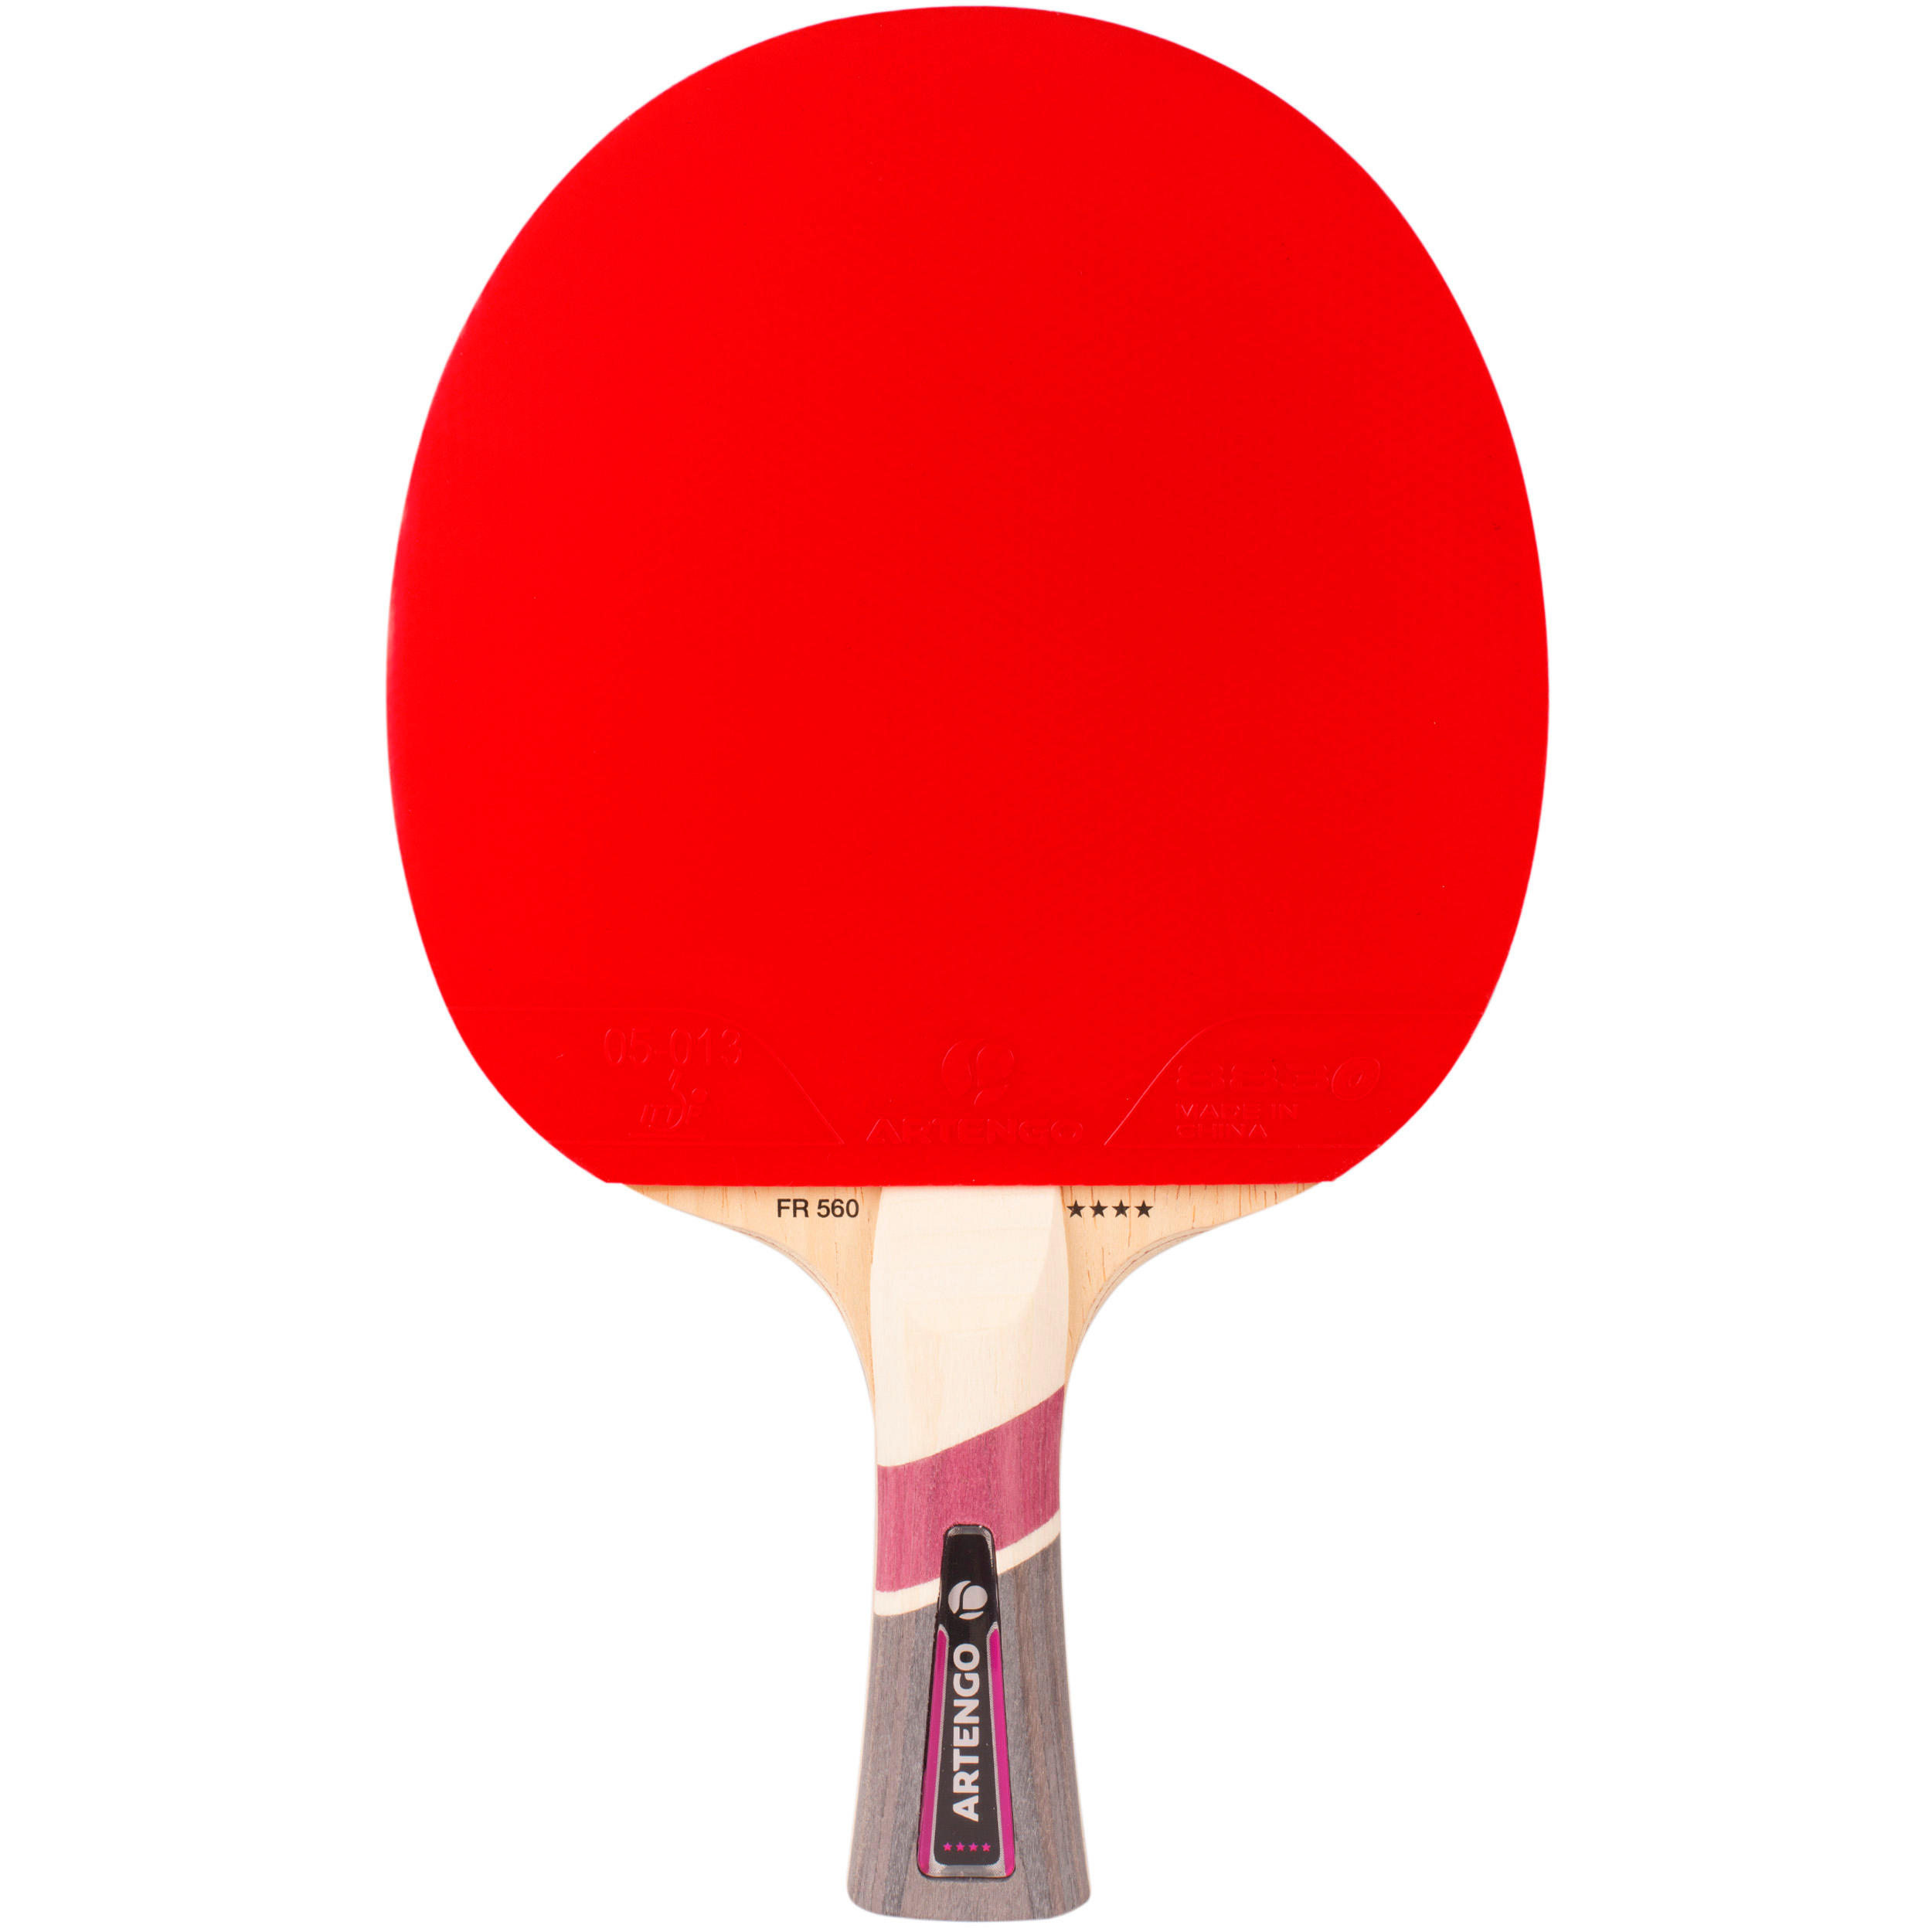 RAQUETTE DE TENNIS DE TABLE FR 560 4*